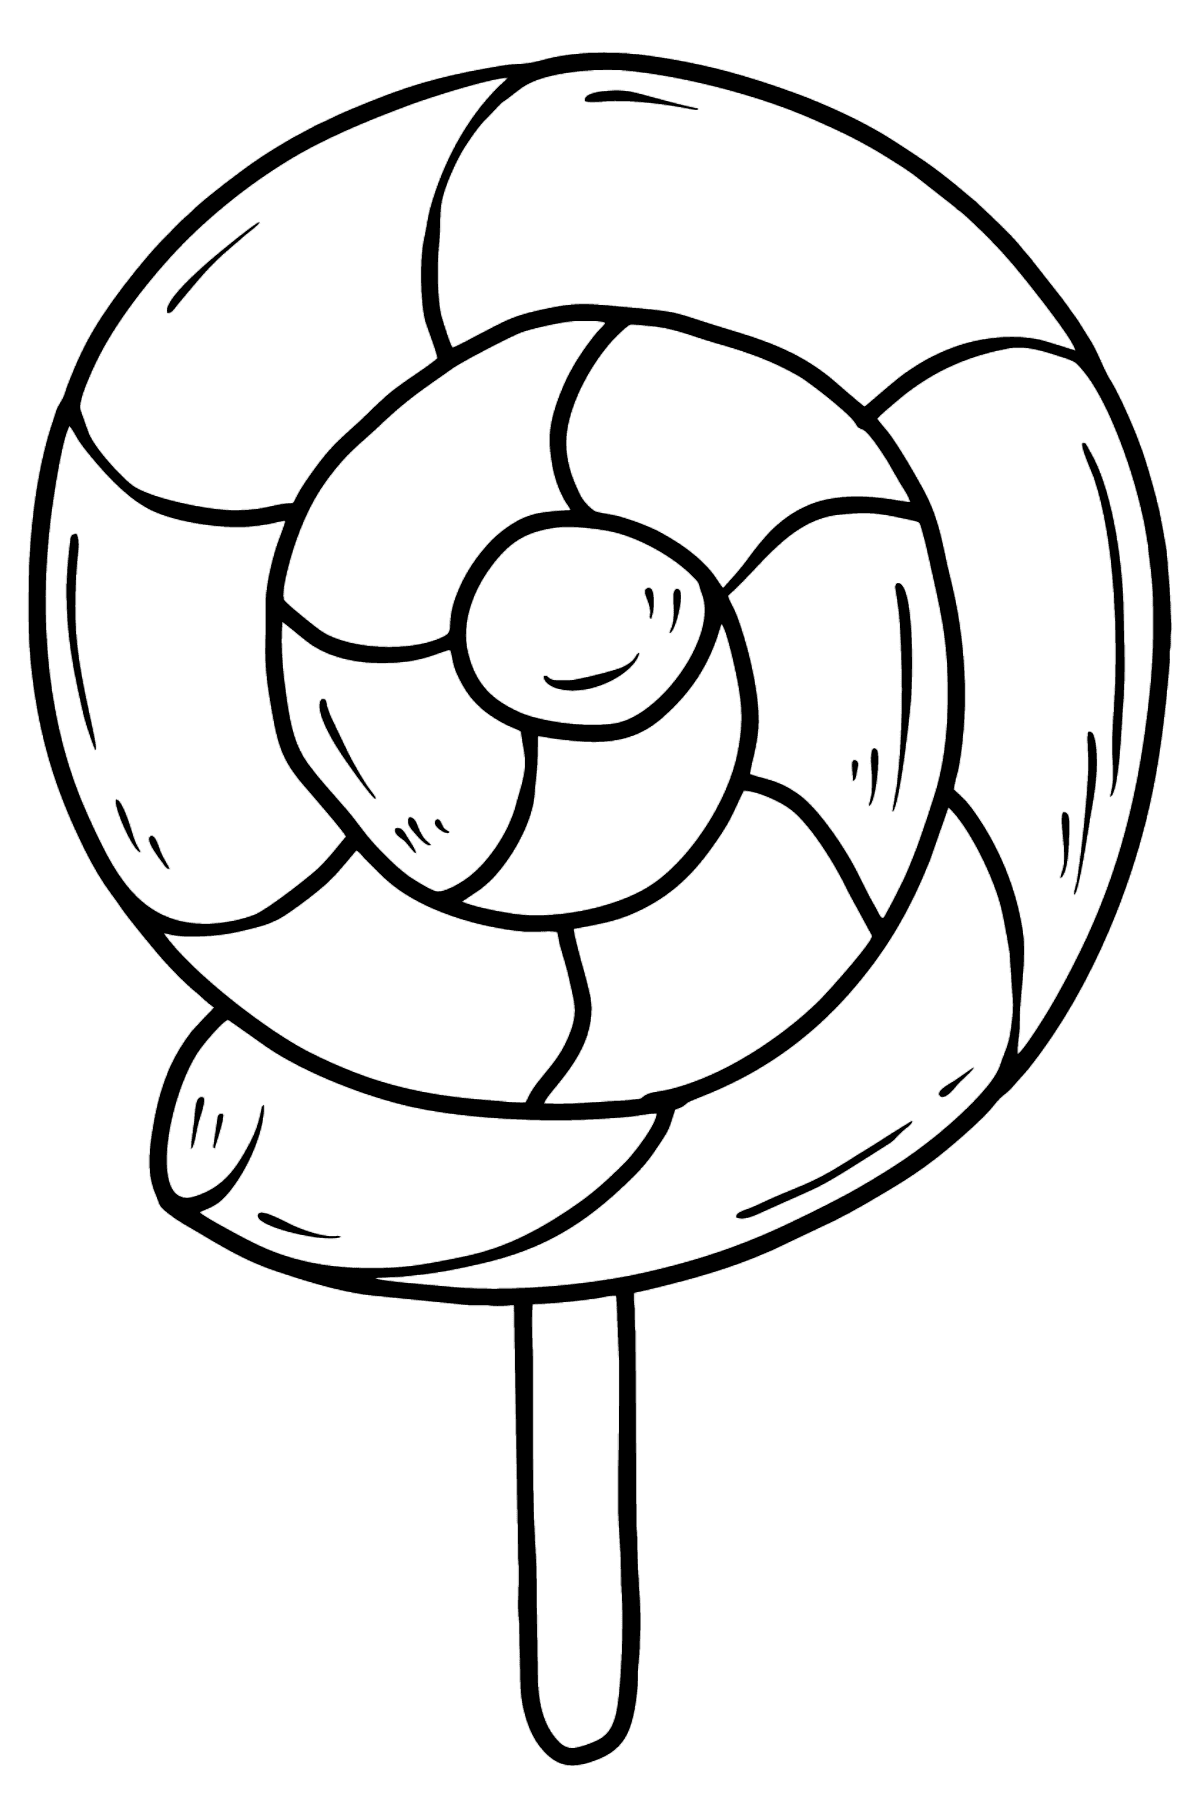 Lolipop coloring page - Coloring Pages for Kids